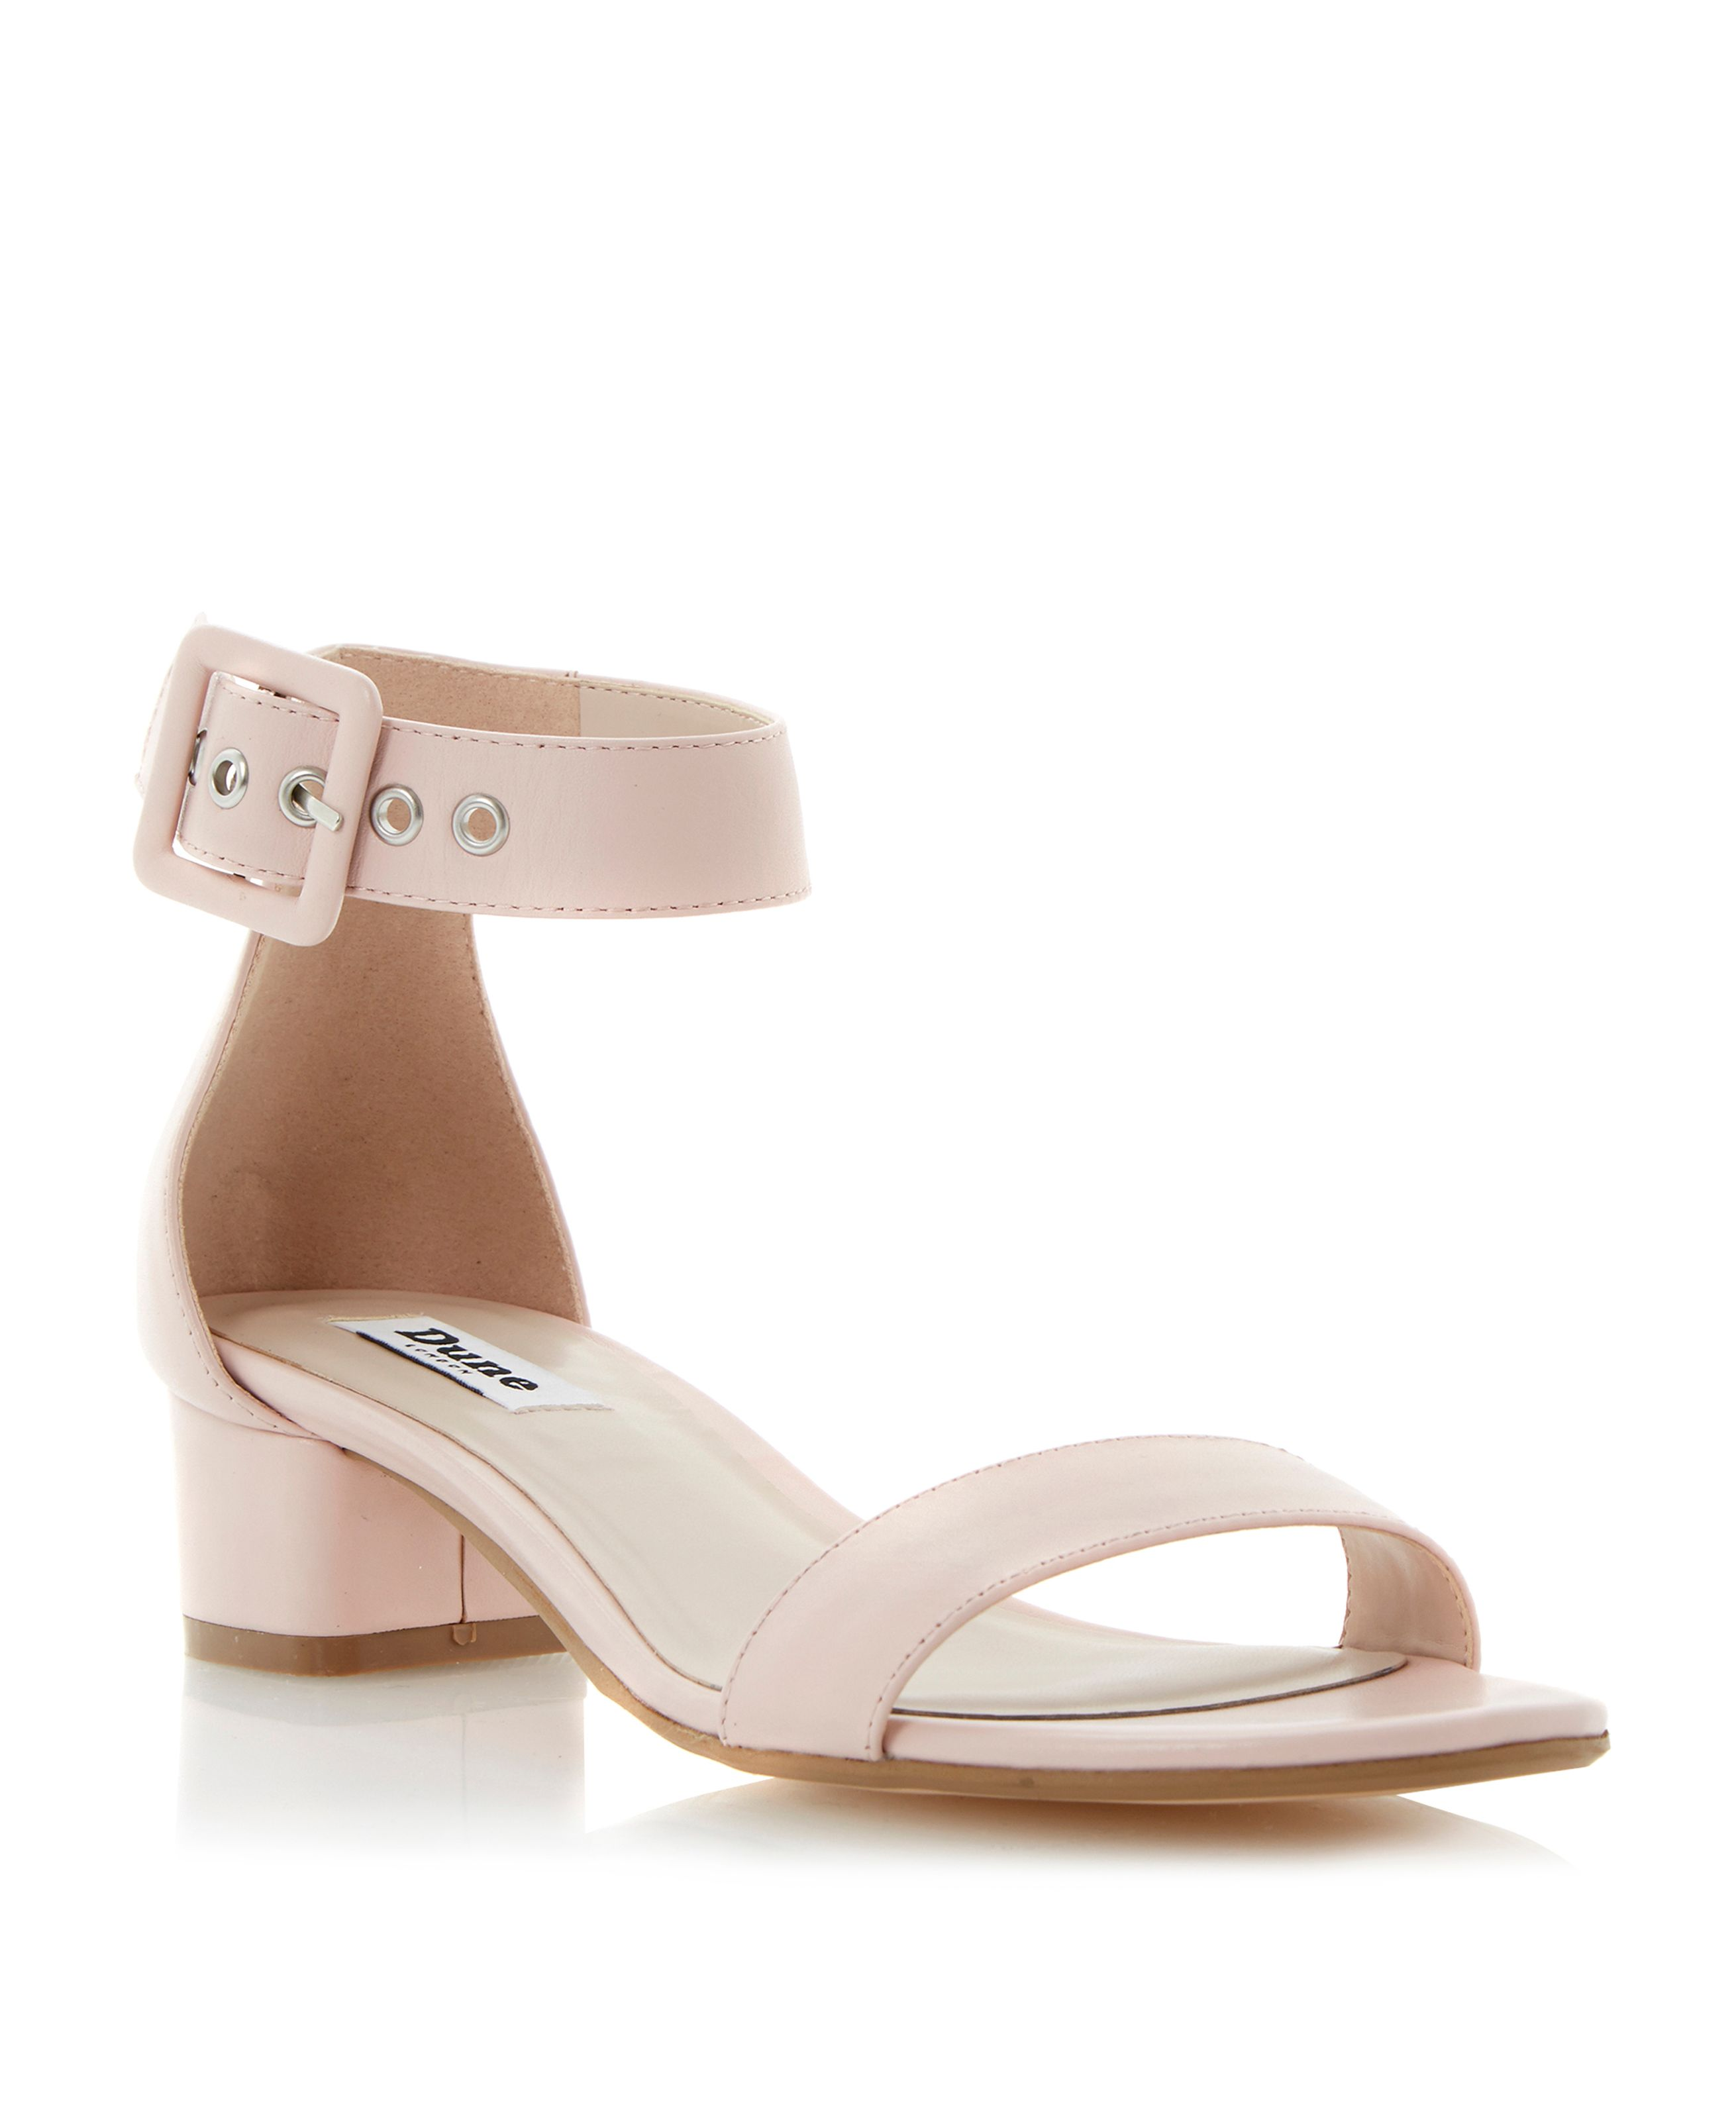 Frann two part block heel sandals